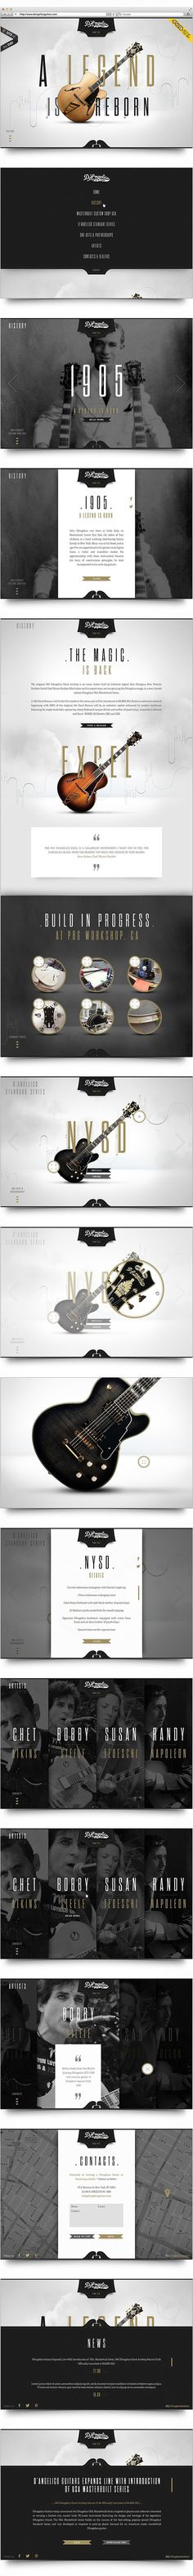 D'Angelico Guitars on Behance #web #typography